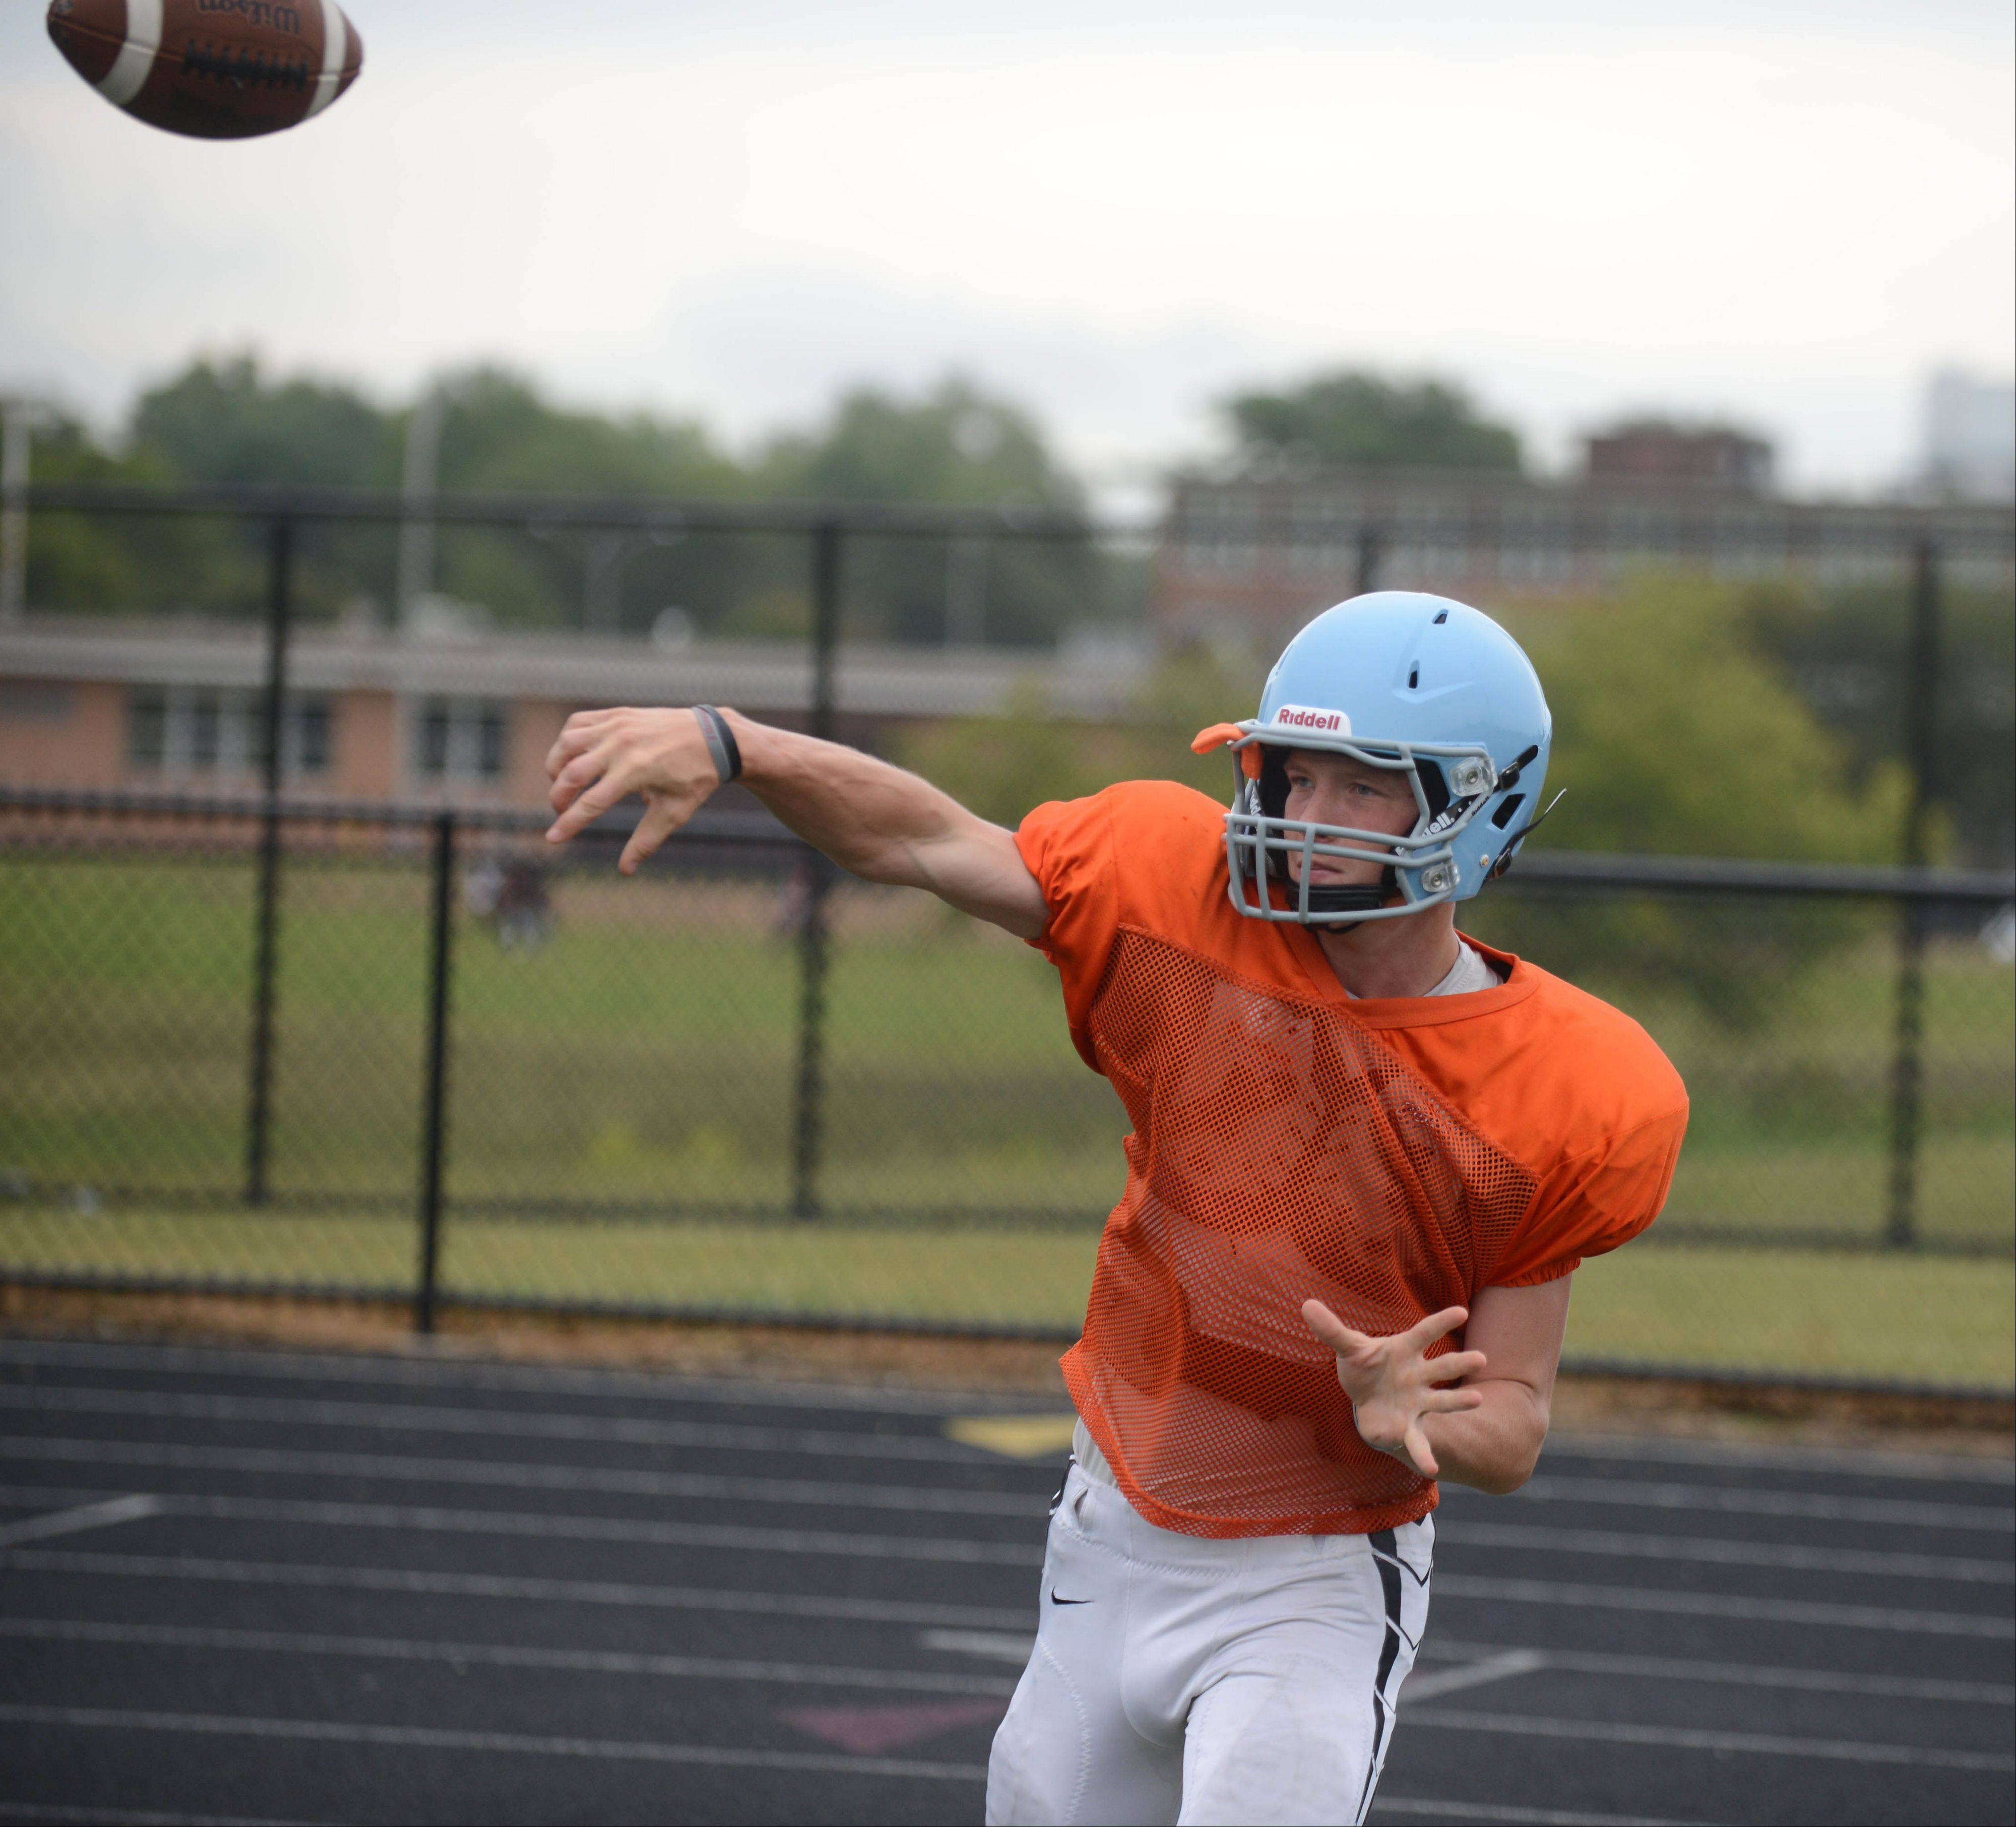 Paul Michna/pmichna@dailyherald.com � Quater Back Brian Johnson took part in Thursdays practice at Willowbrook High School.